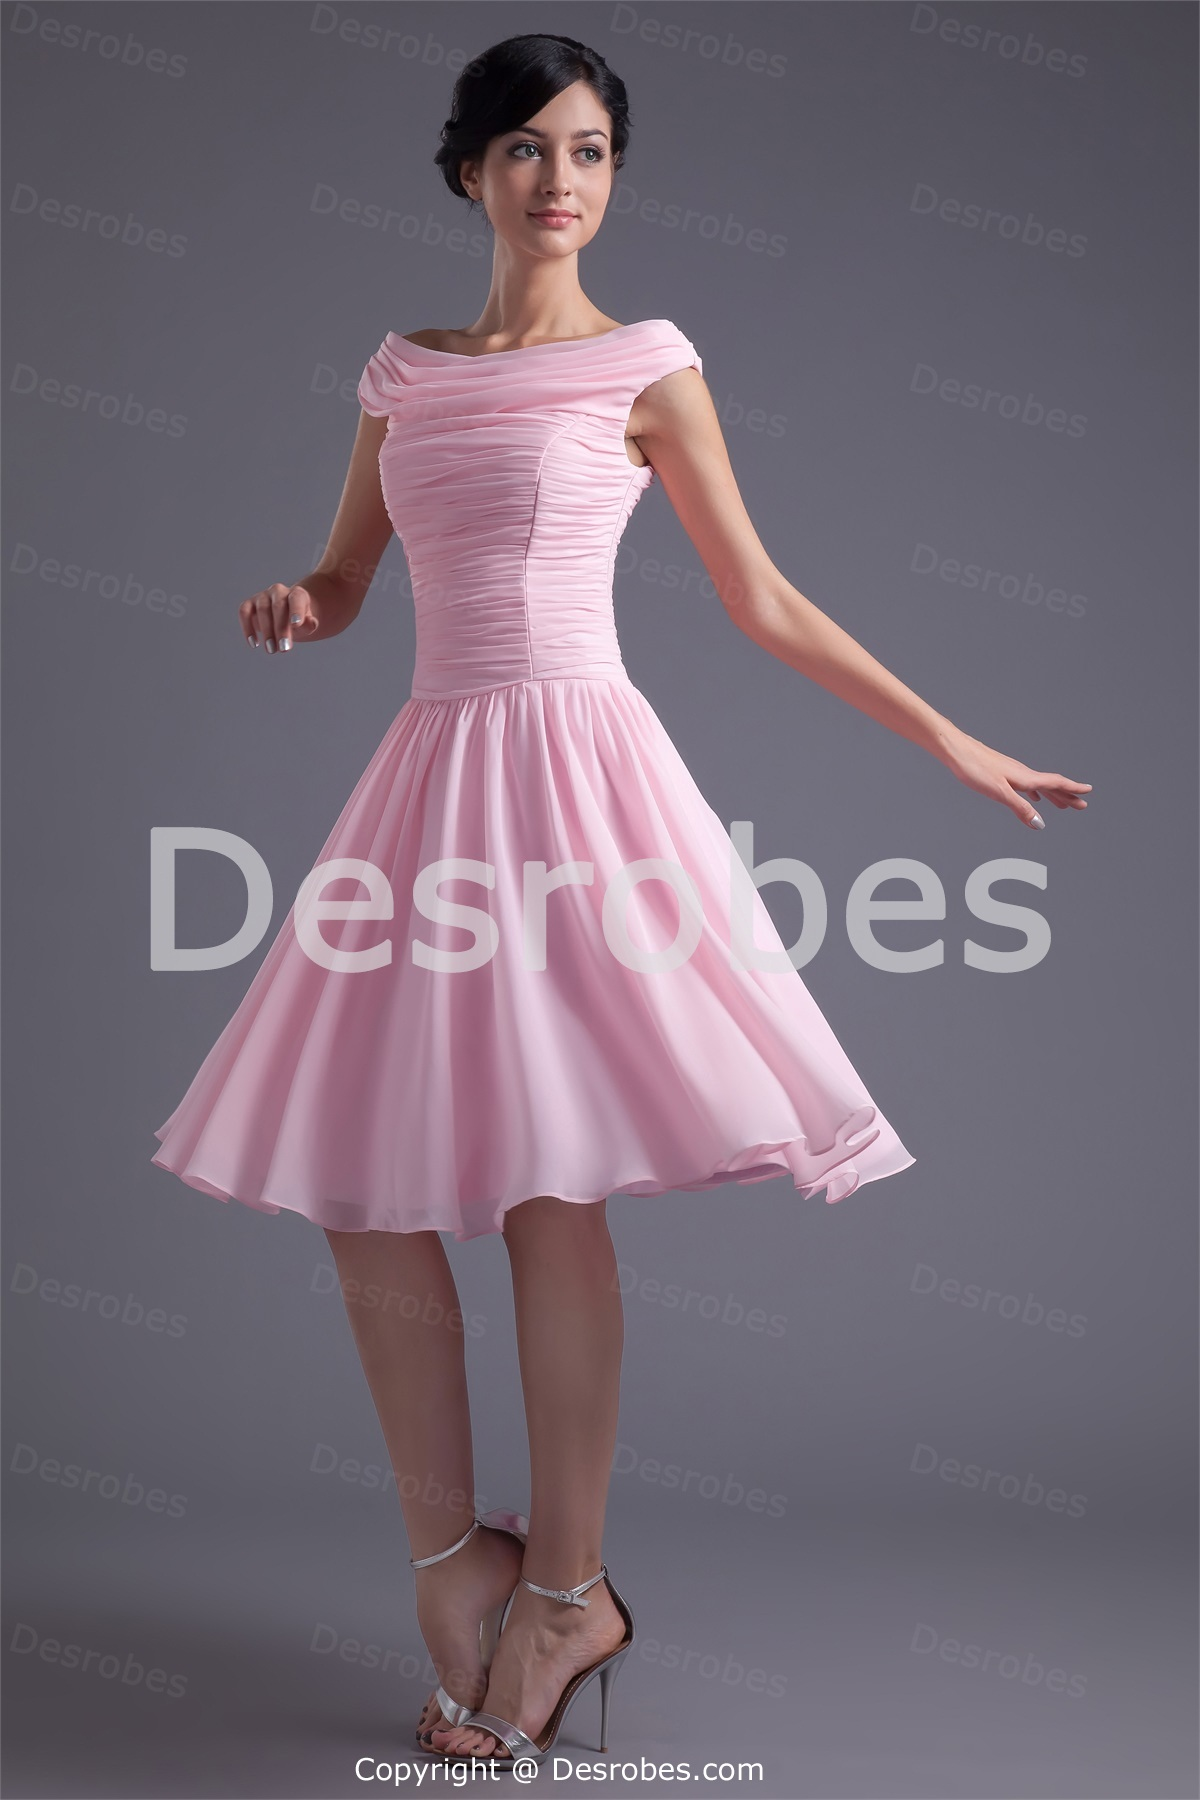 e38c8fc8569 Robe cocktail rose et grise robe ceremonie simple